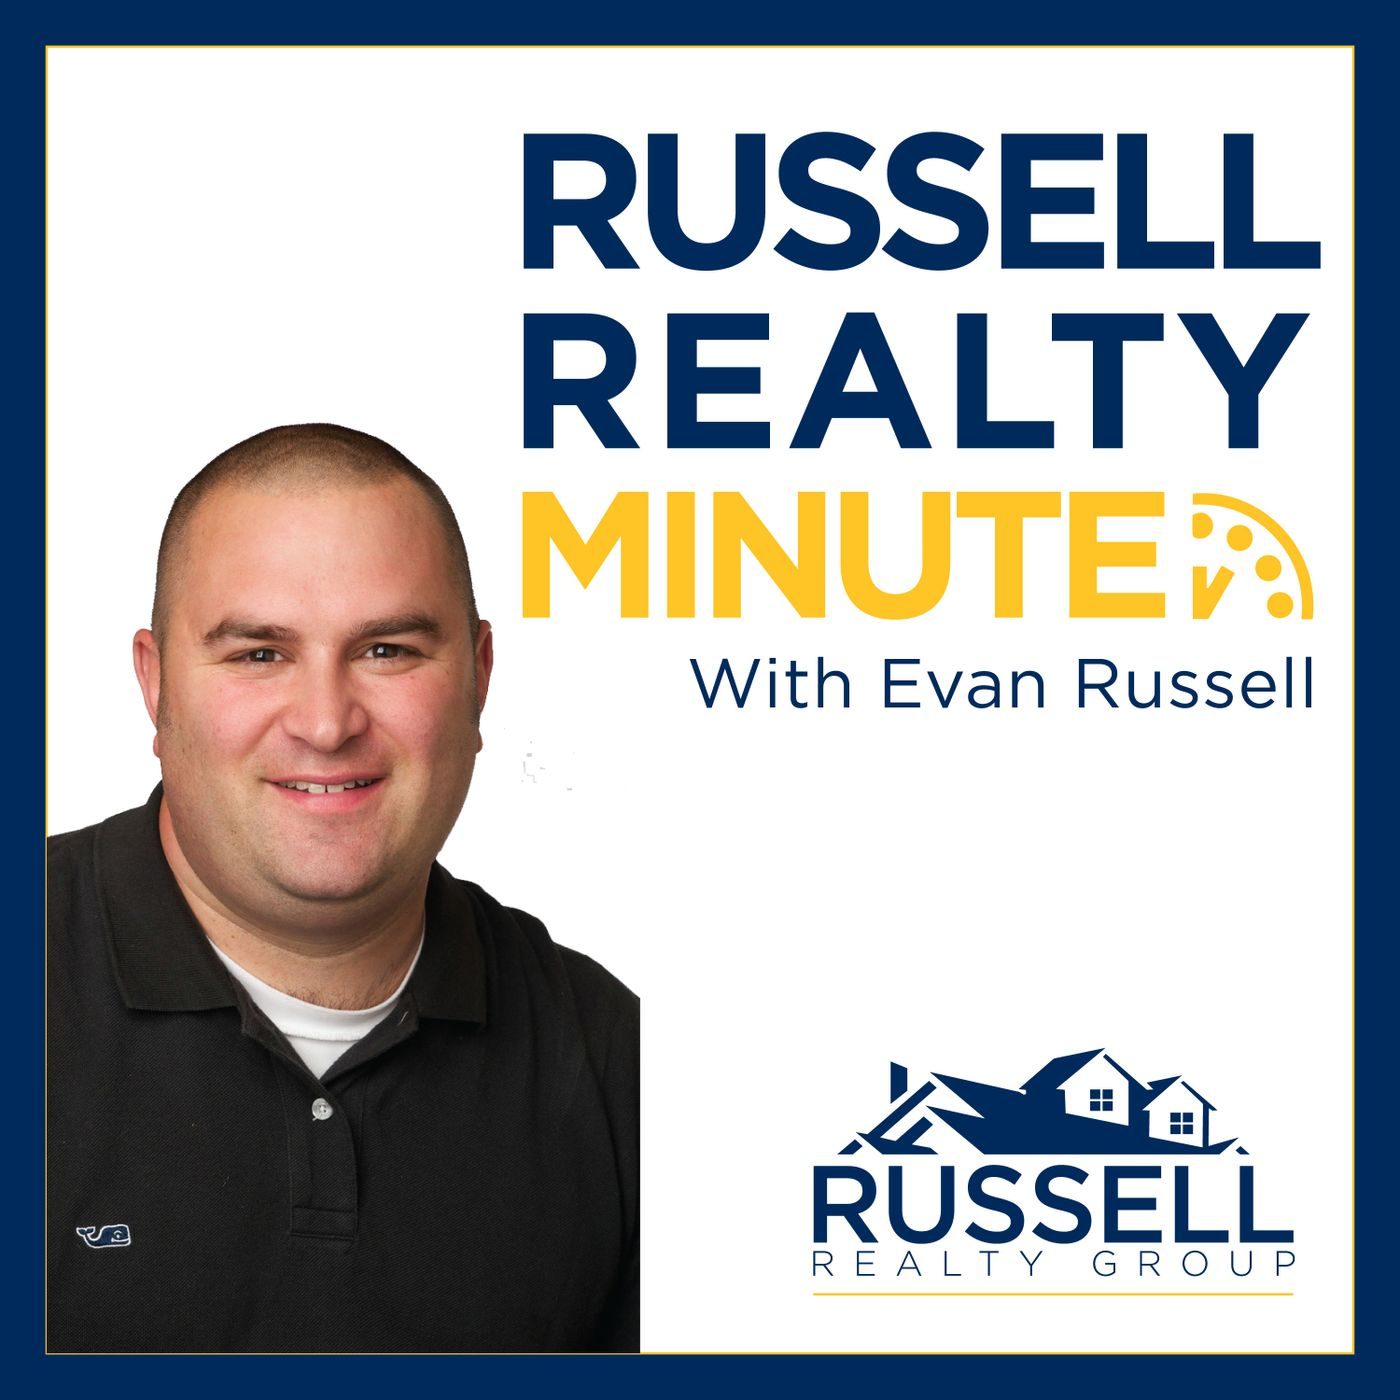 Russell Realty Minute with Evan Russell